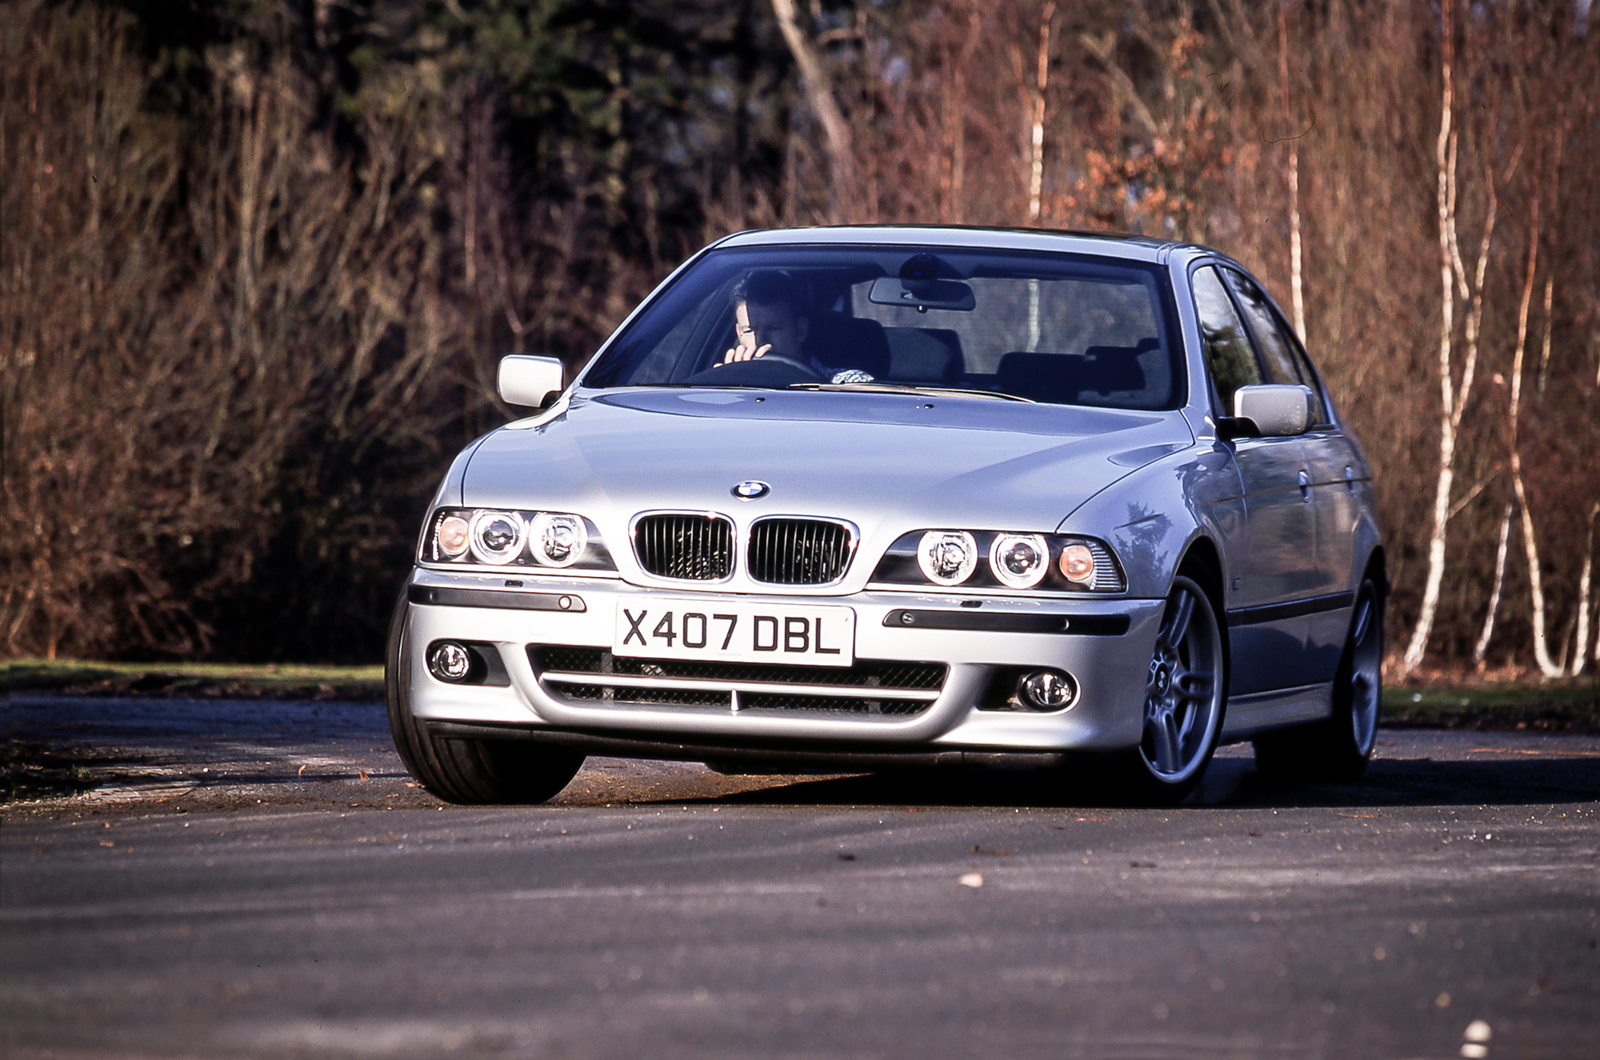 150mph Cars For Under £2000   Used Car Buying Guide | Autocar